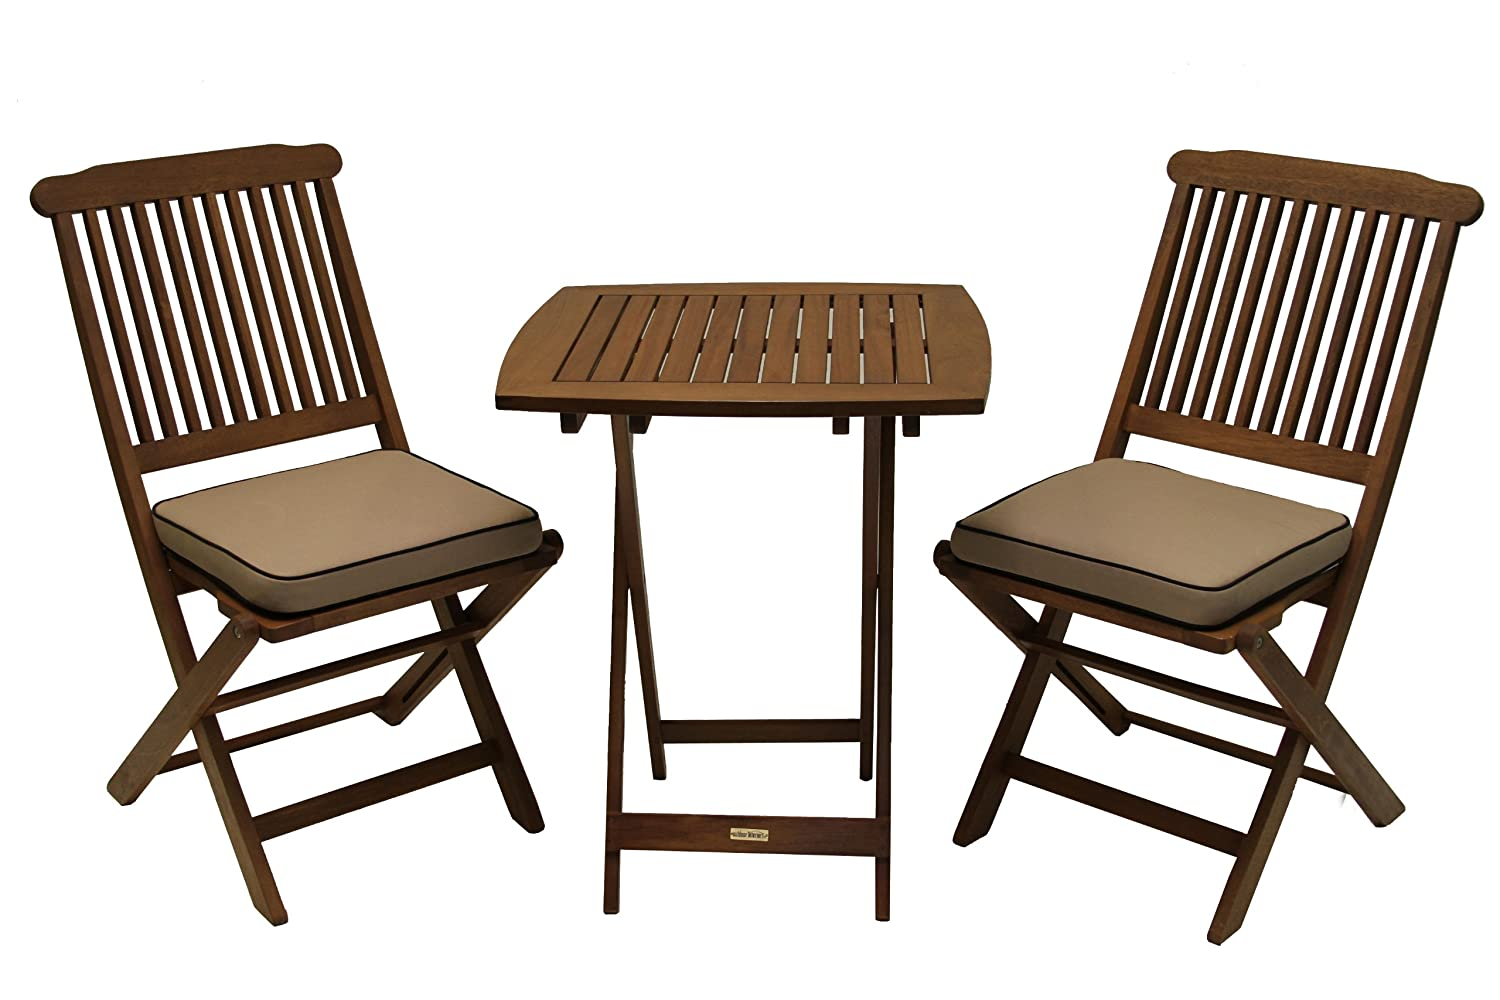 Amazon.com: Outdoor Interiors Eucalyptus 3 Piece Square Bistro ...